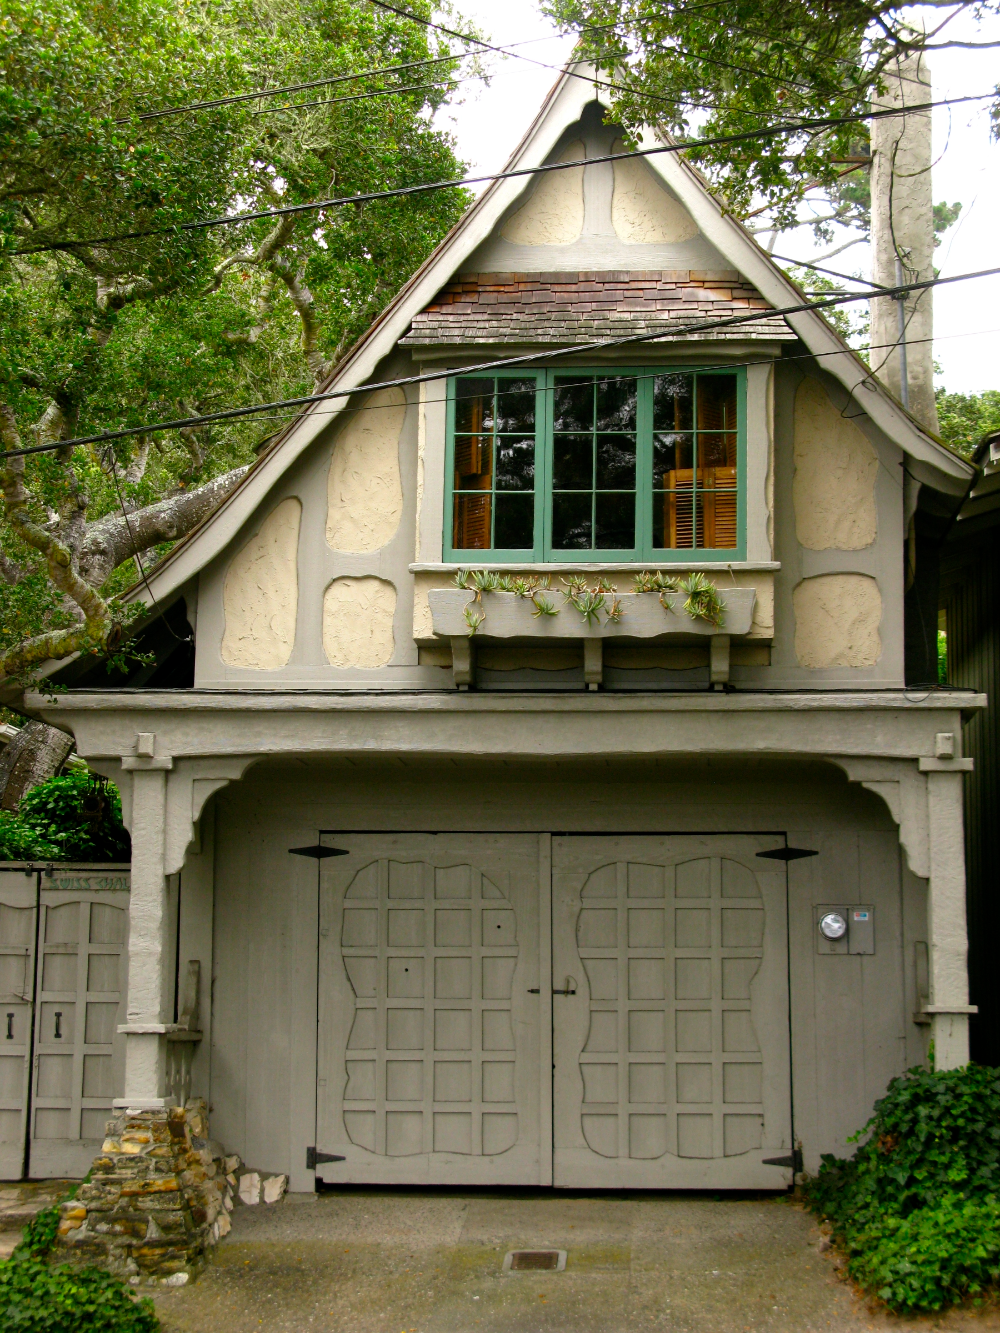 EVEN THE GARAGES IN CARMEL ARE CHARMING